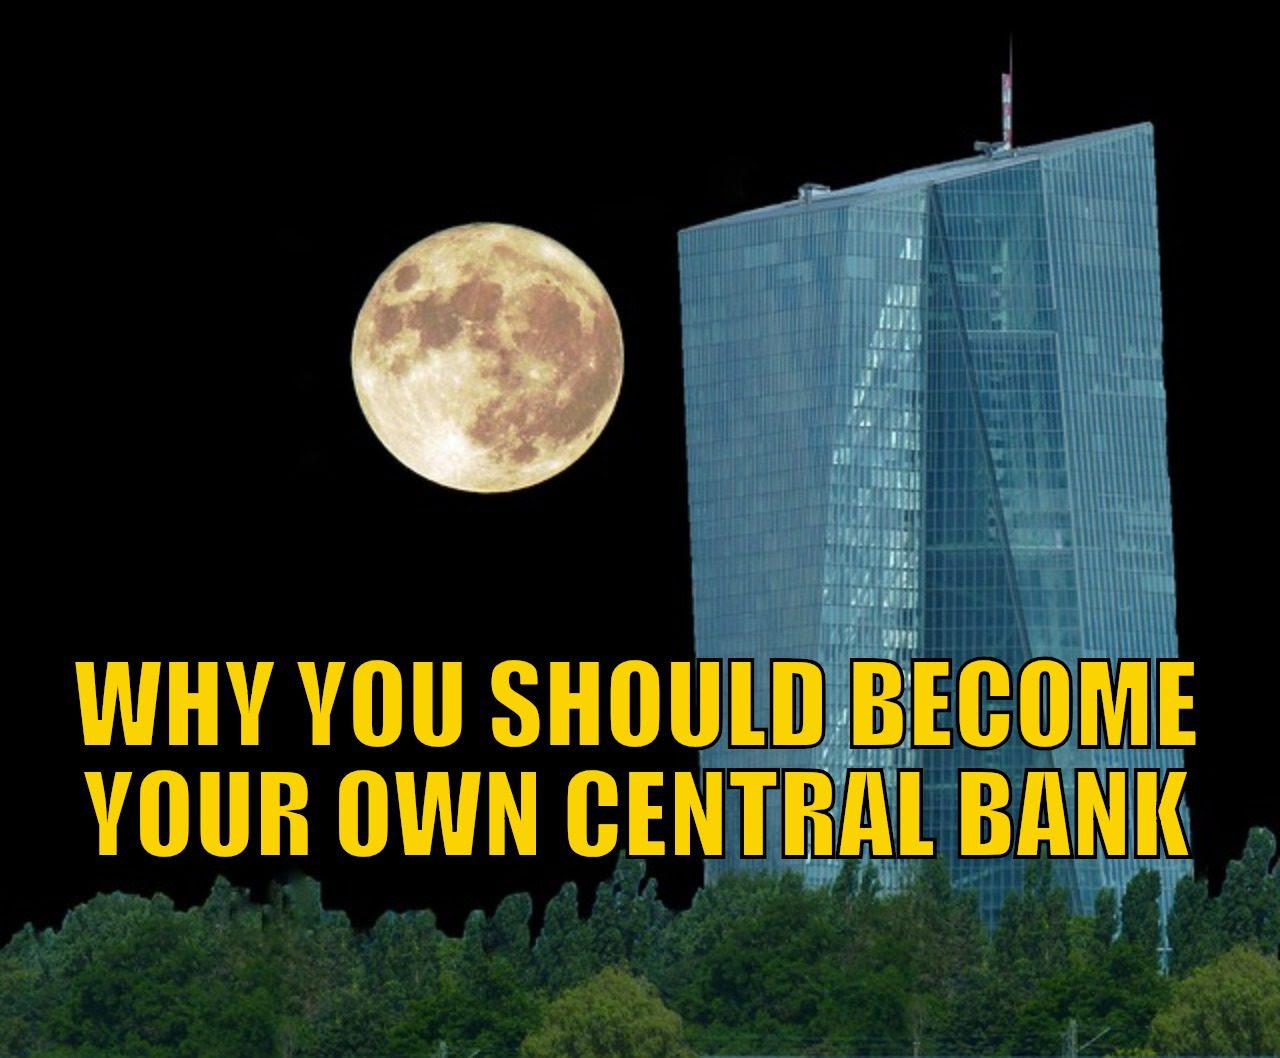 Why You Should Become Your Own Central Bank - Even if Your Nation's Central Bank Has Gold Reserves